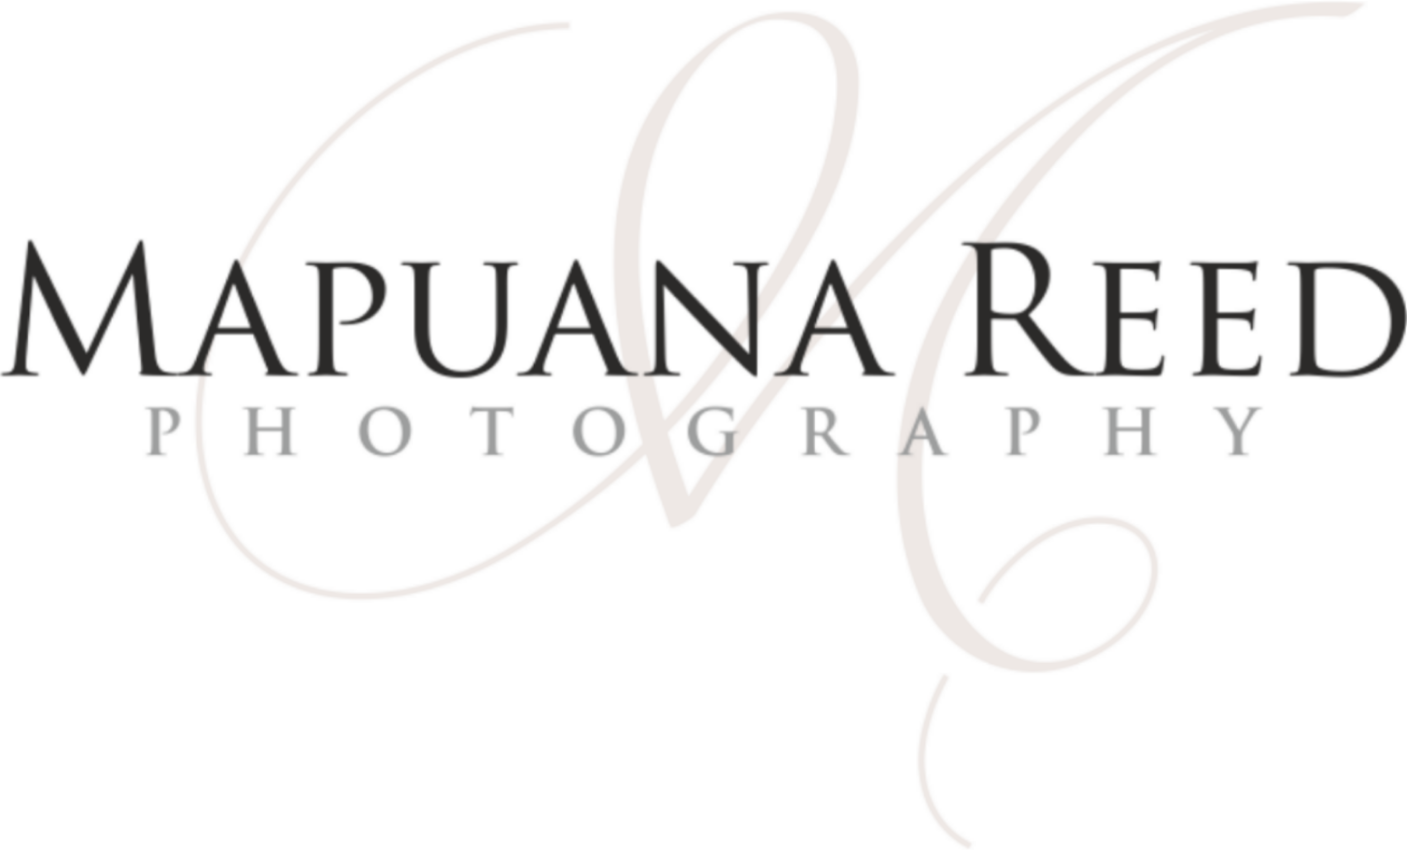 Mapuana Reed Photography